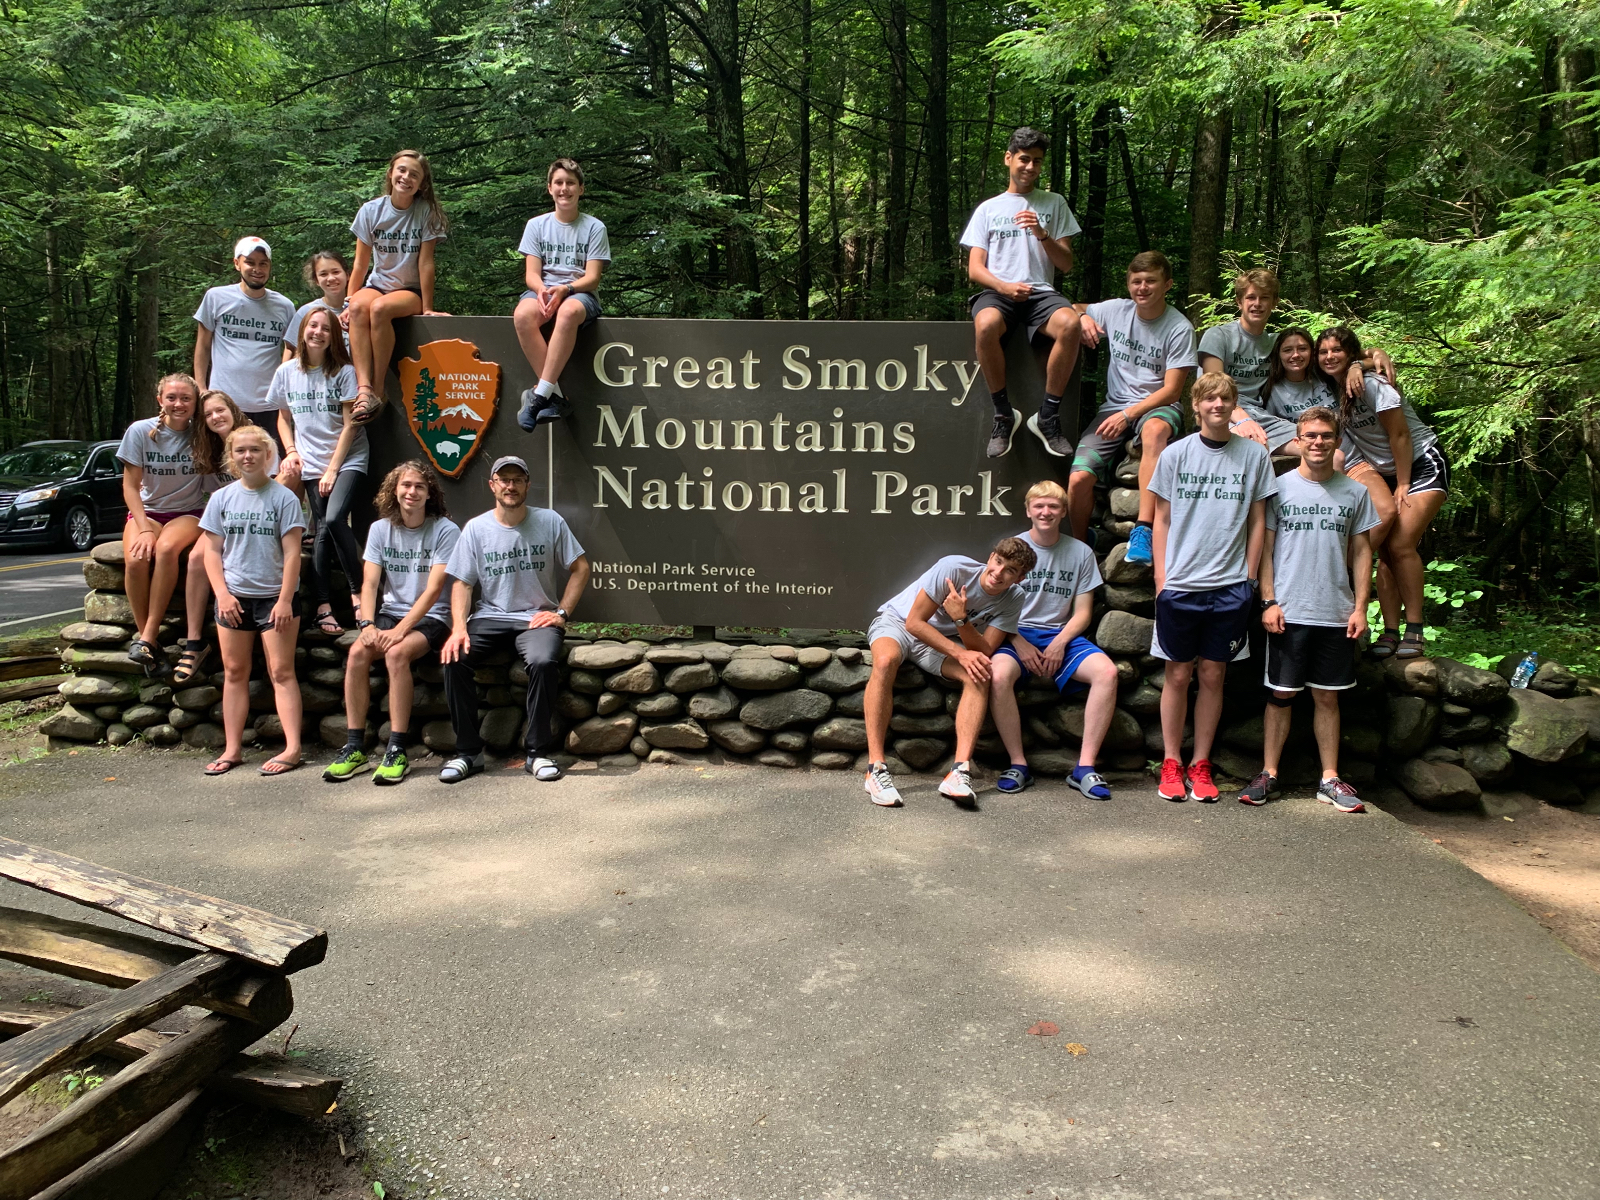 Wheeler XC Kickstarts Season in the Smoky Mountains